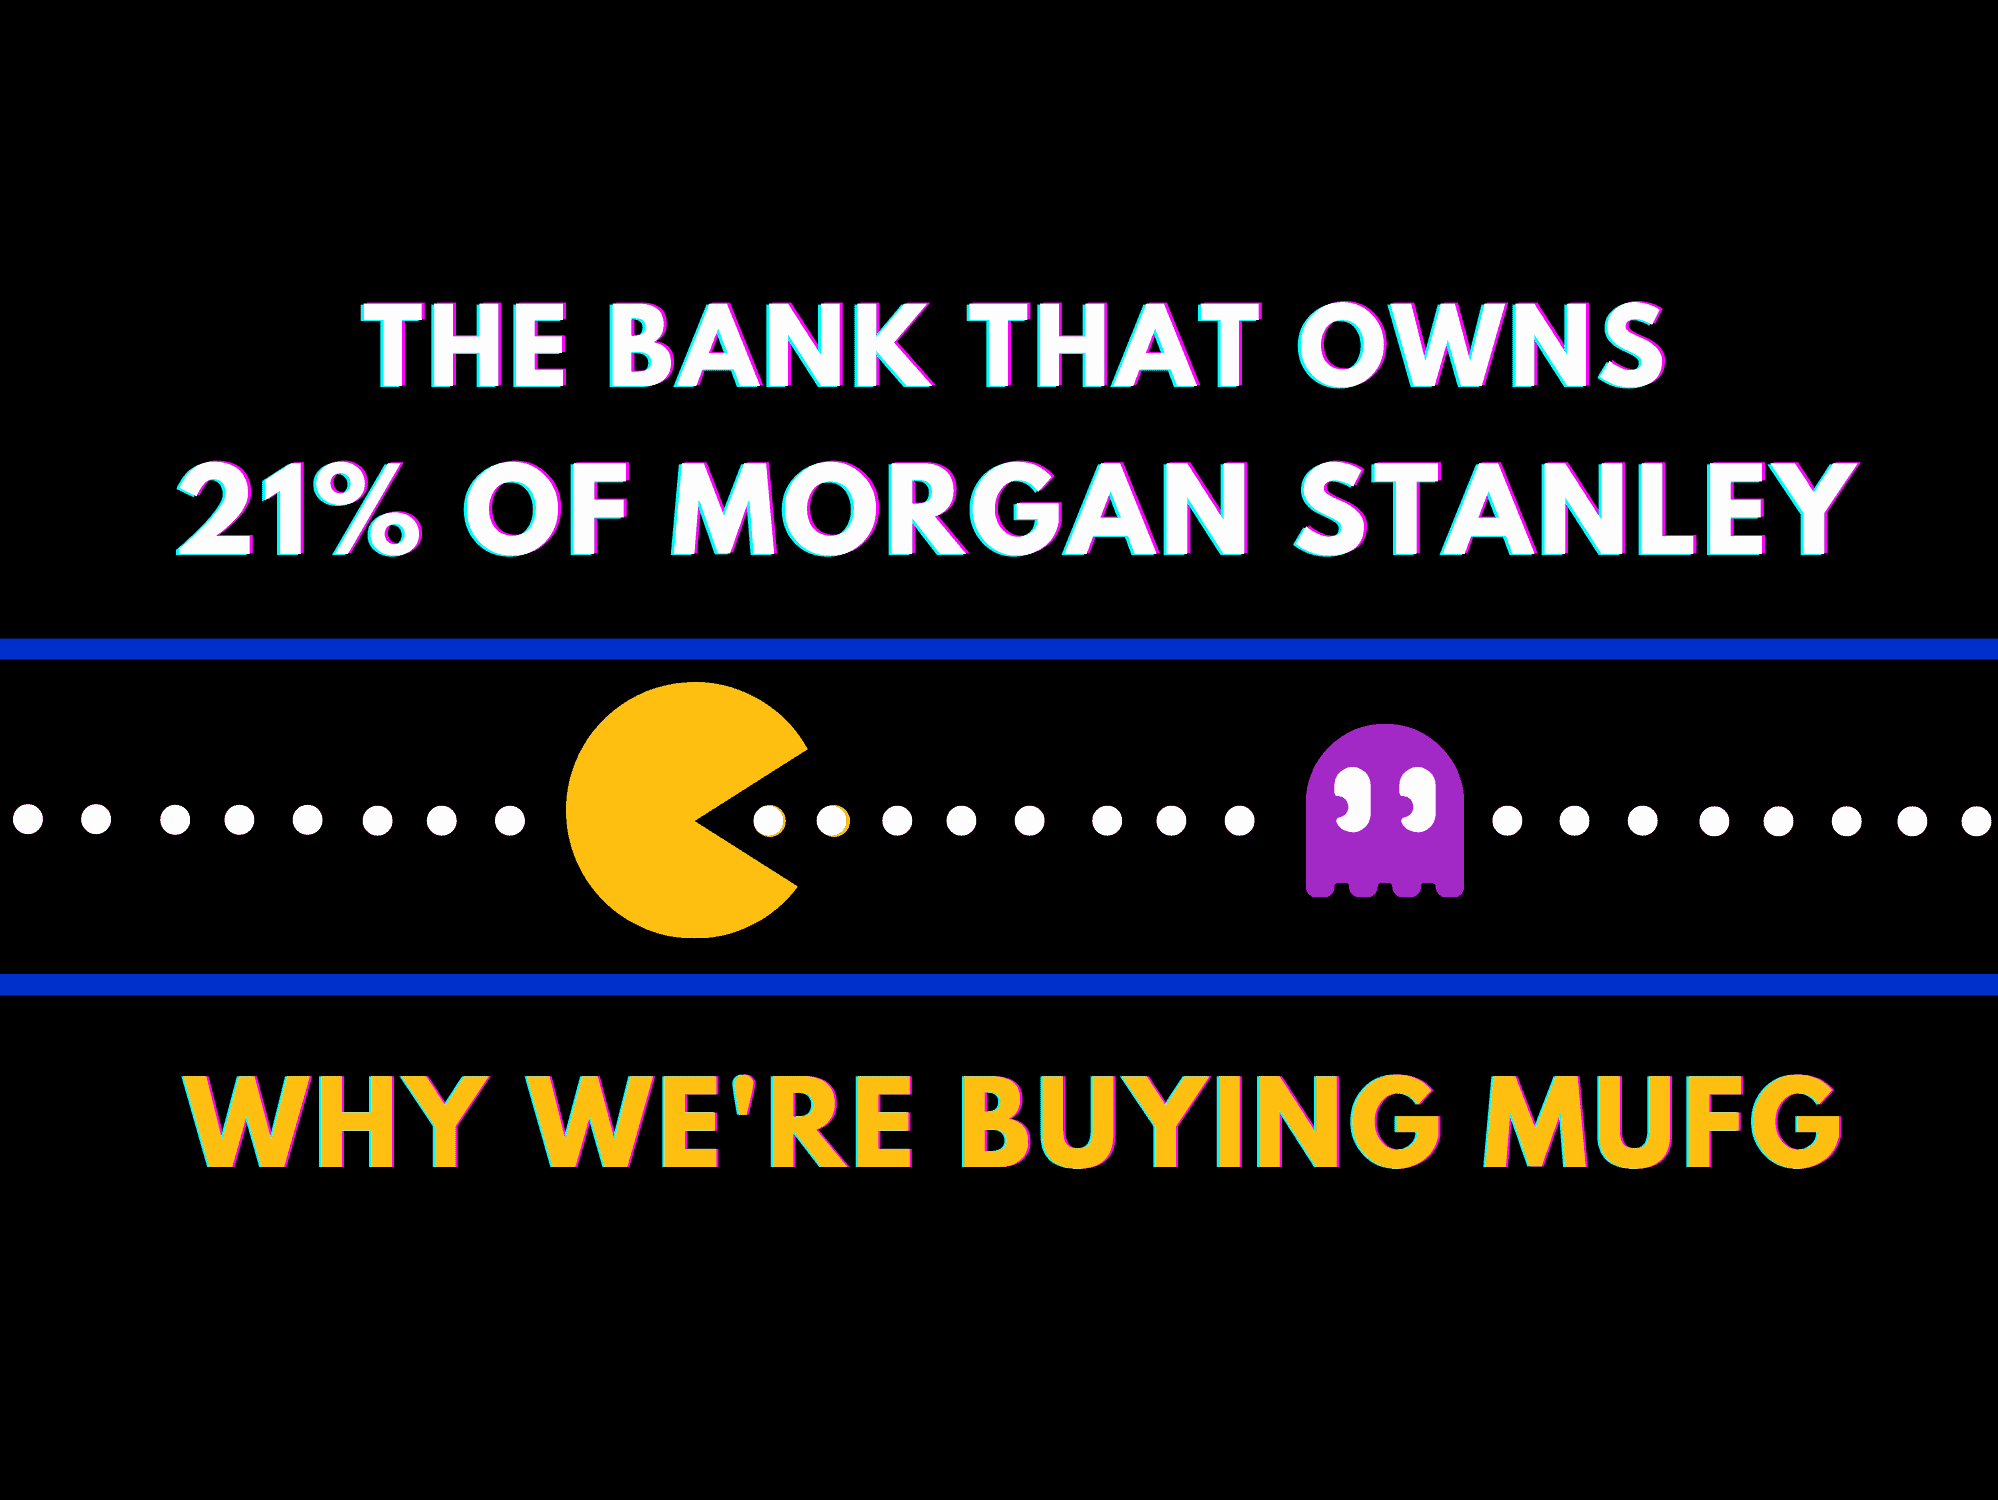 The Bank That Owns 21% of Morgan Stanley. Why We're Buying MUFG